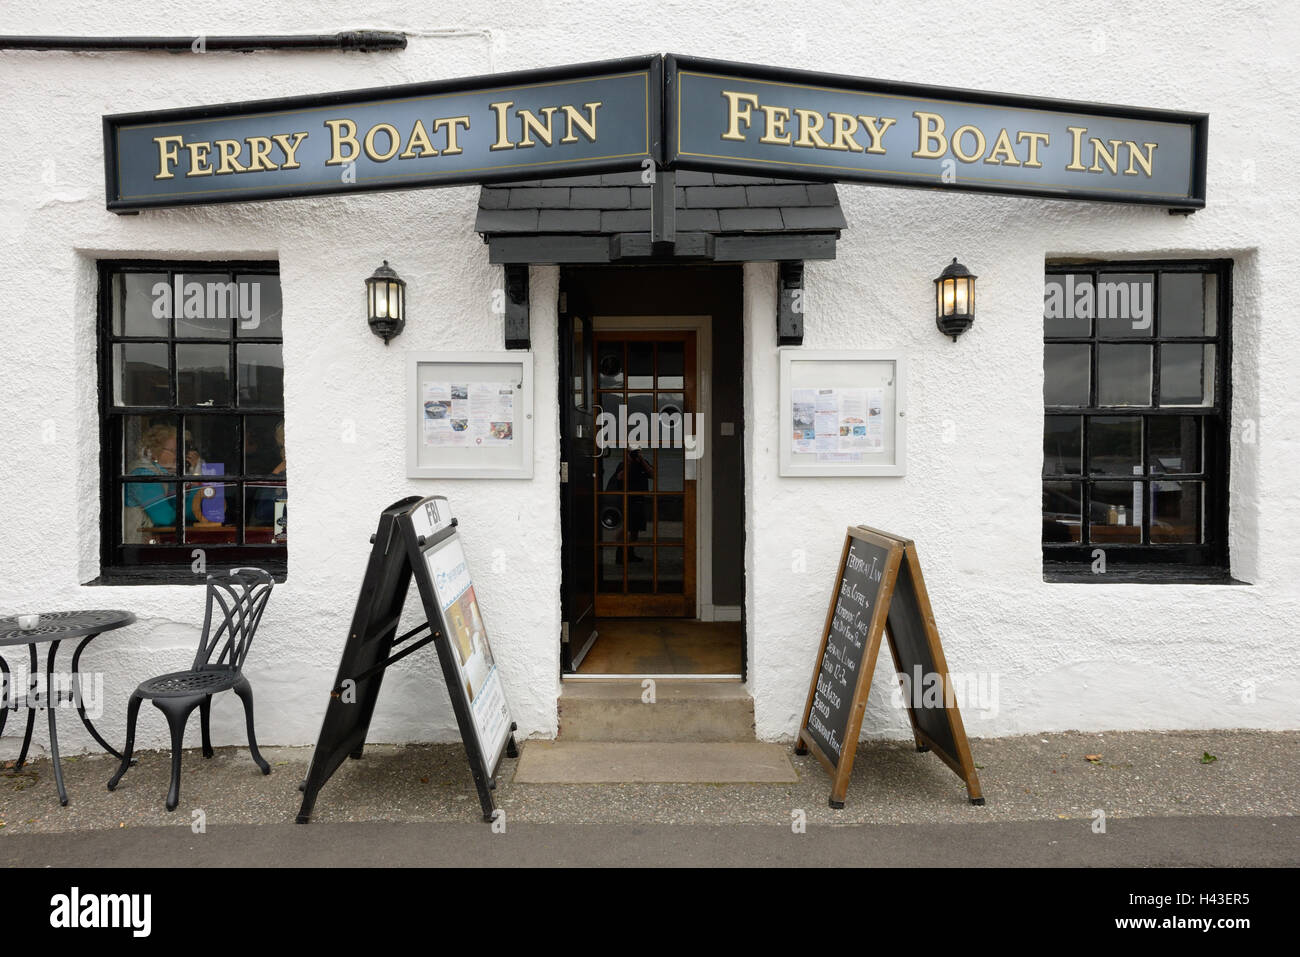 The Ferry Boat Inn, Ullapool, Scotland, UK - Stock Image